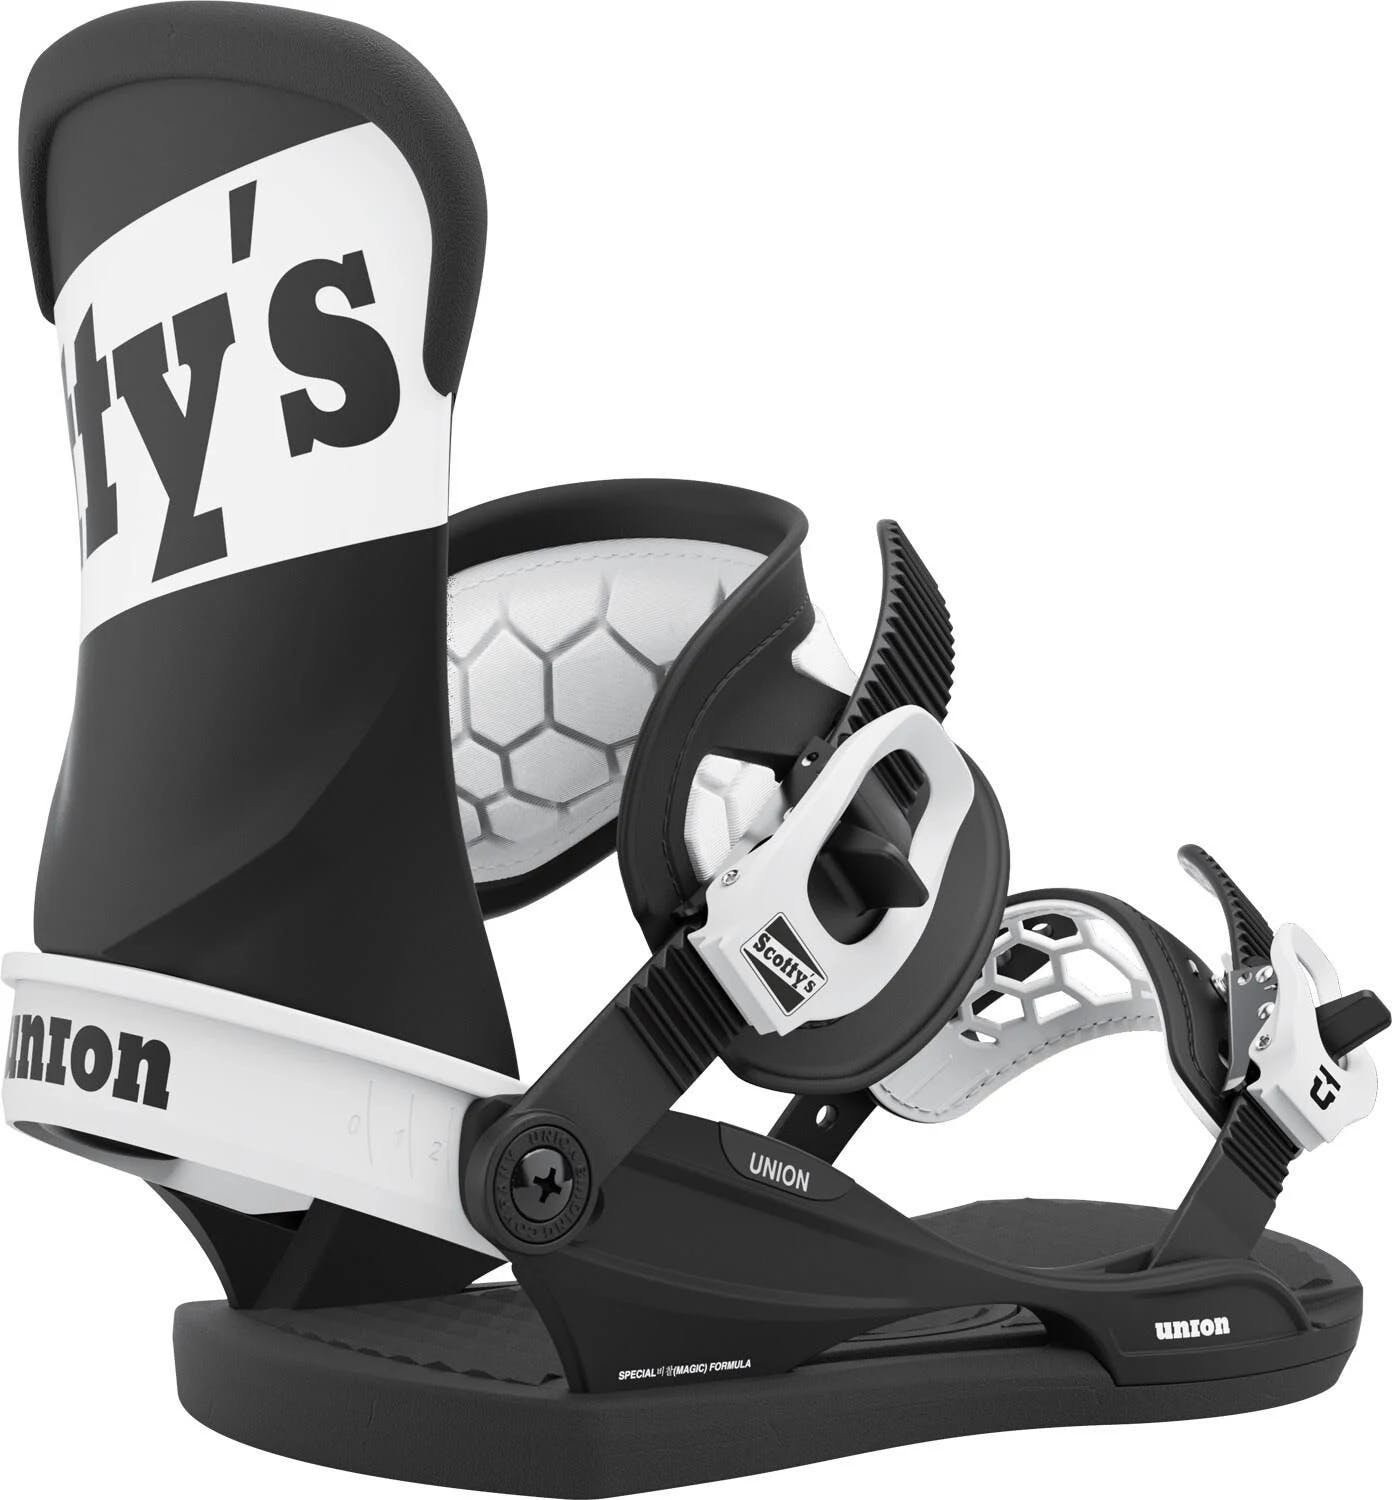 Union Contact Pro Snowboard Bindings · 2021